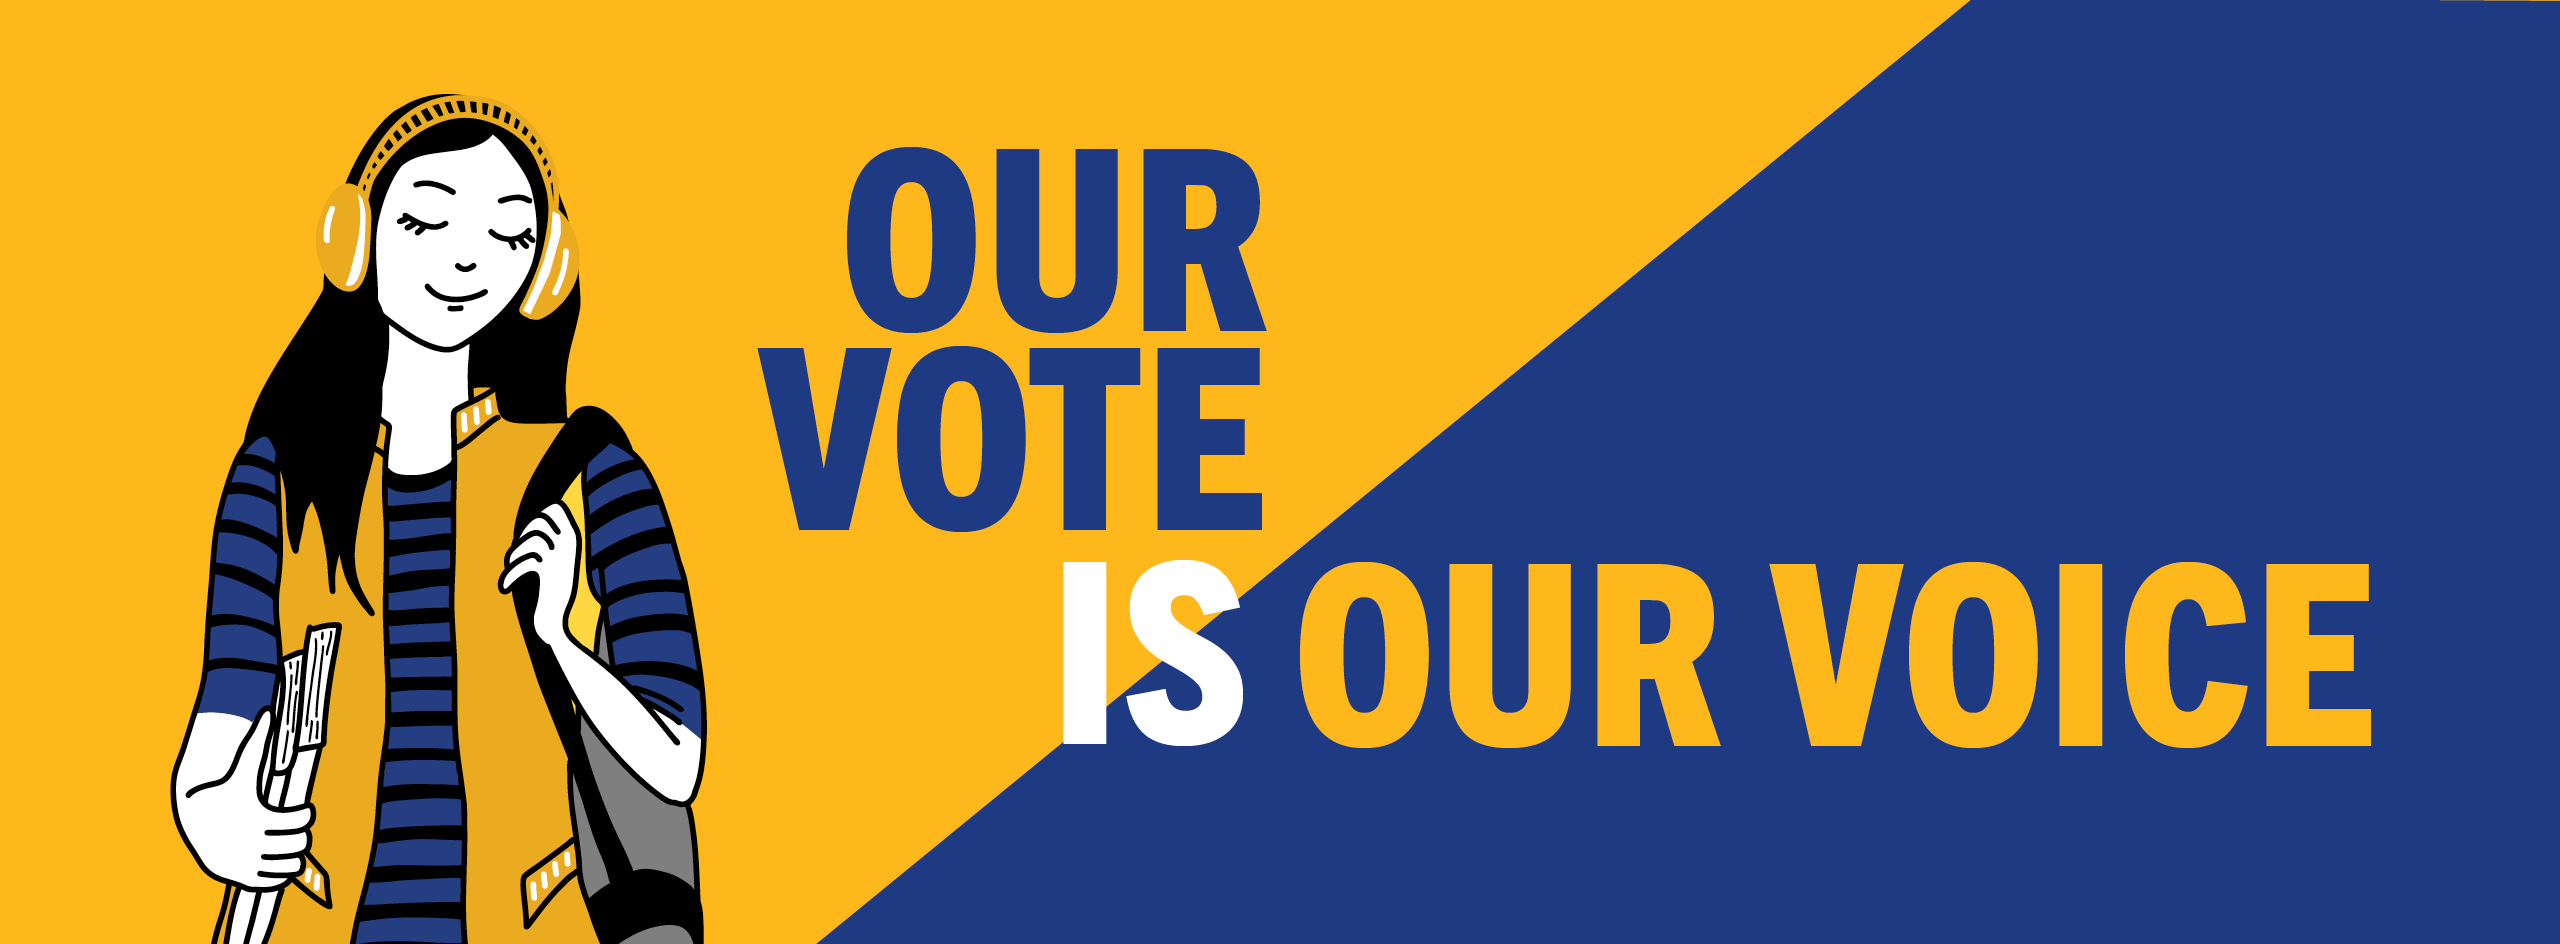 Our vote is our voice